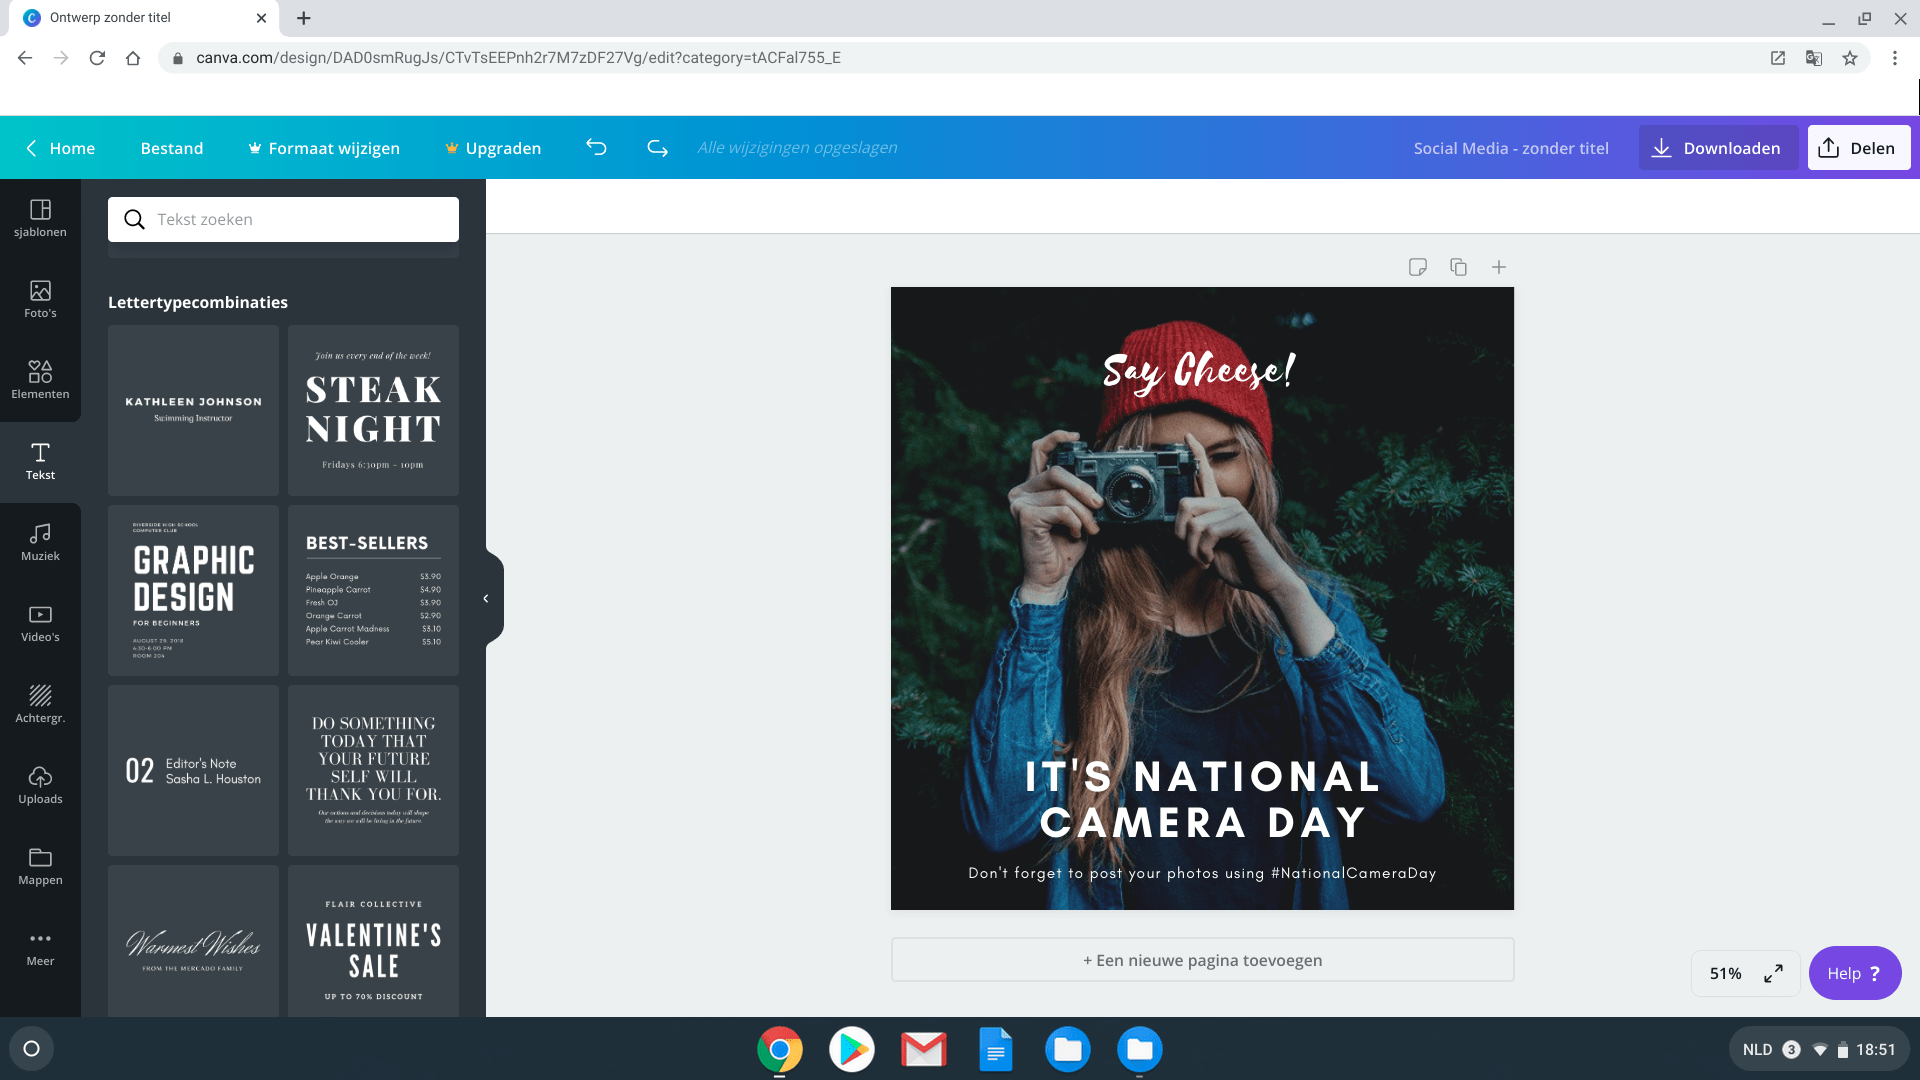 photoshop alternatief canva app voor chromebook